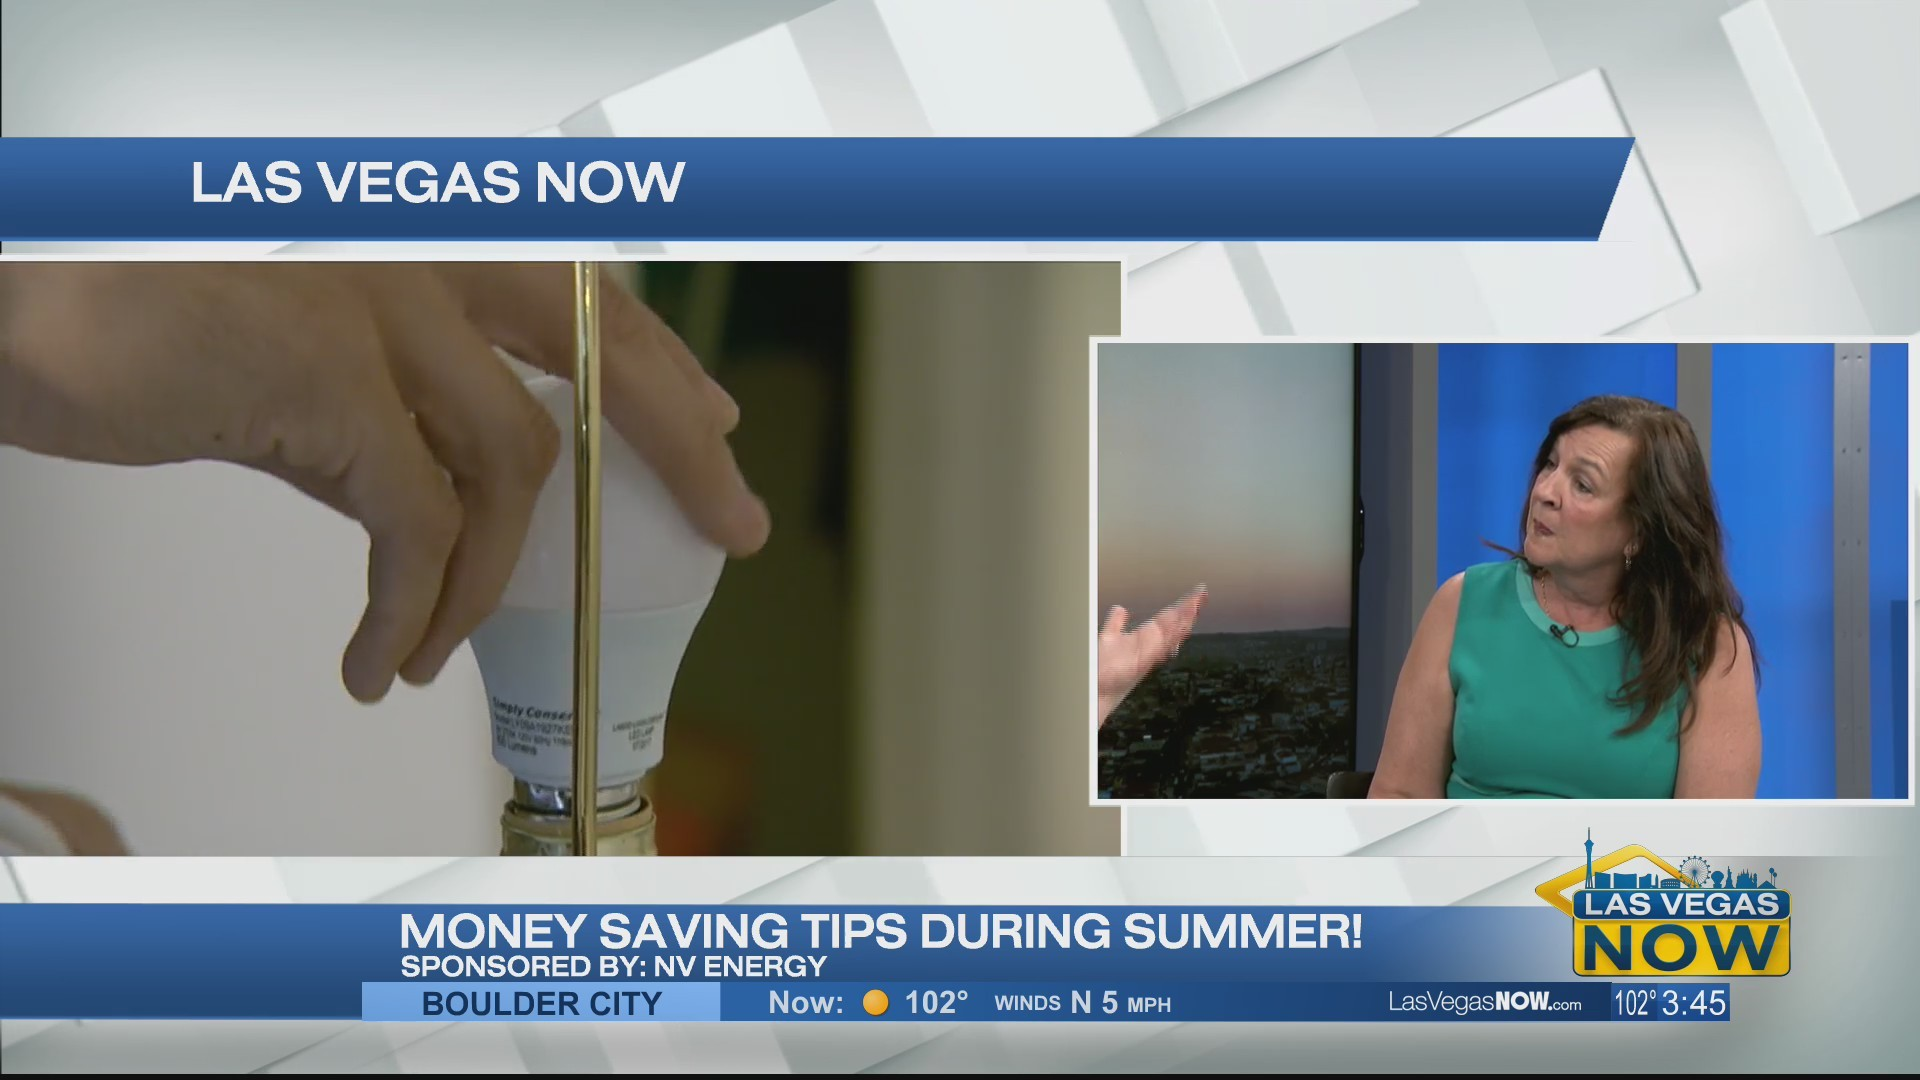 Money saving tips during the summer